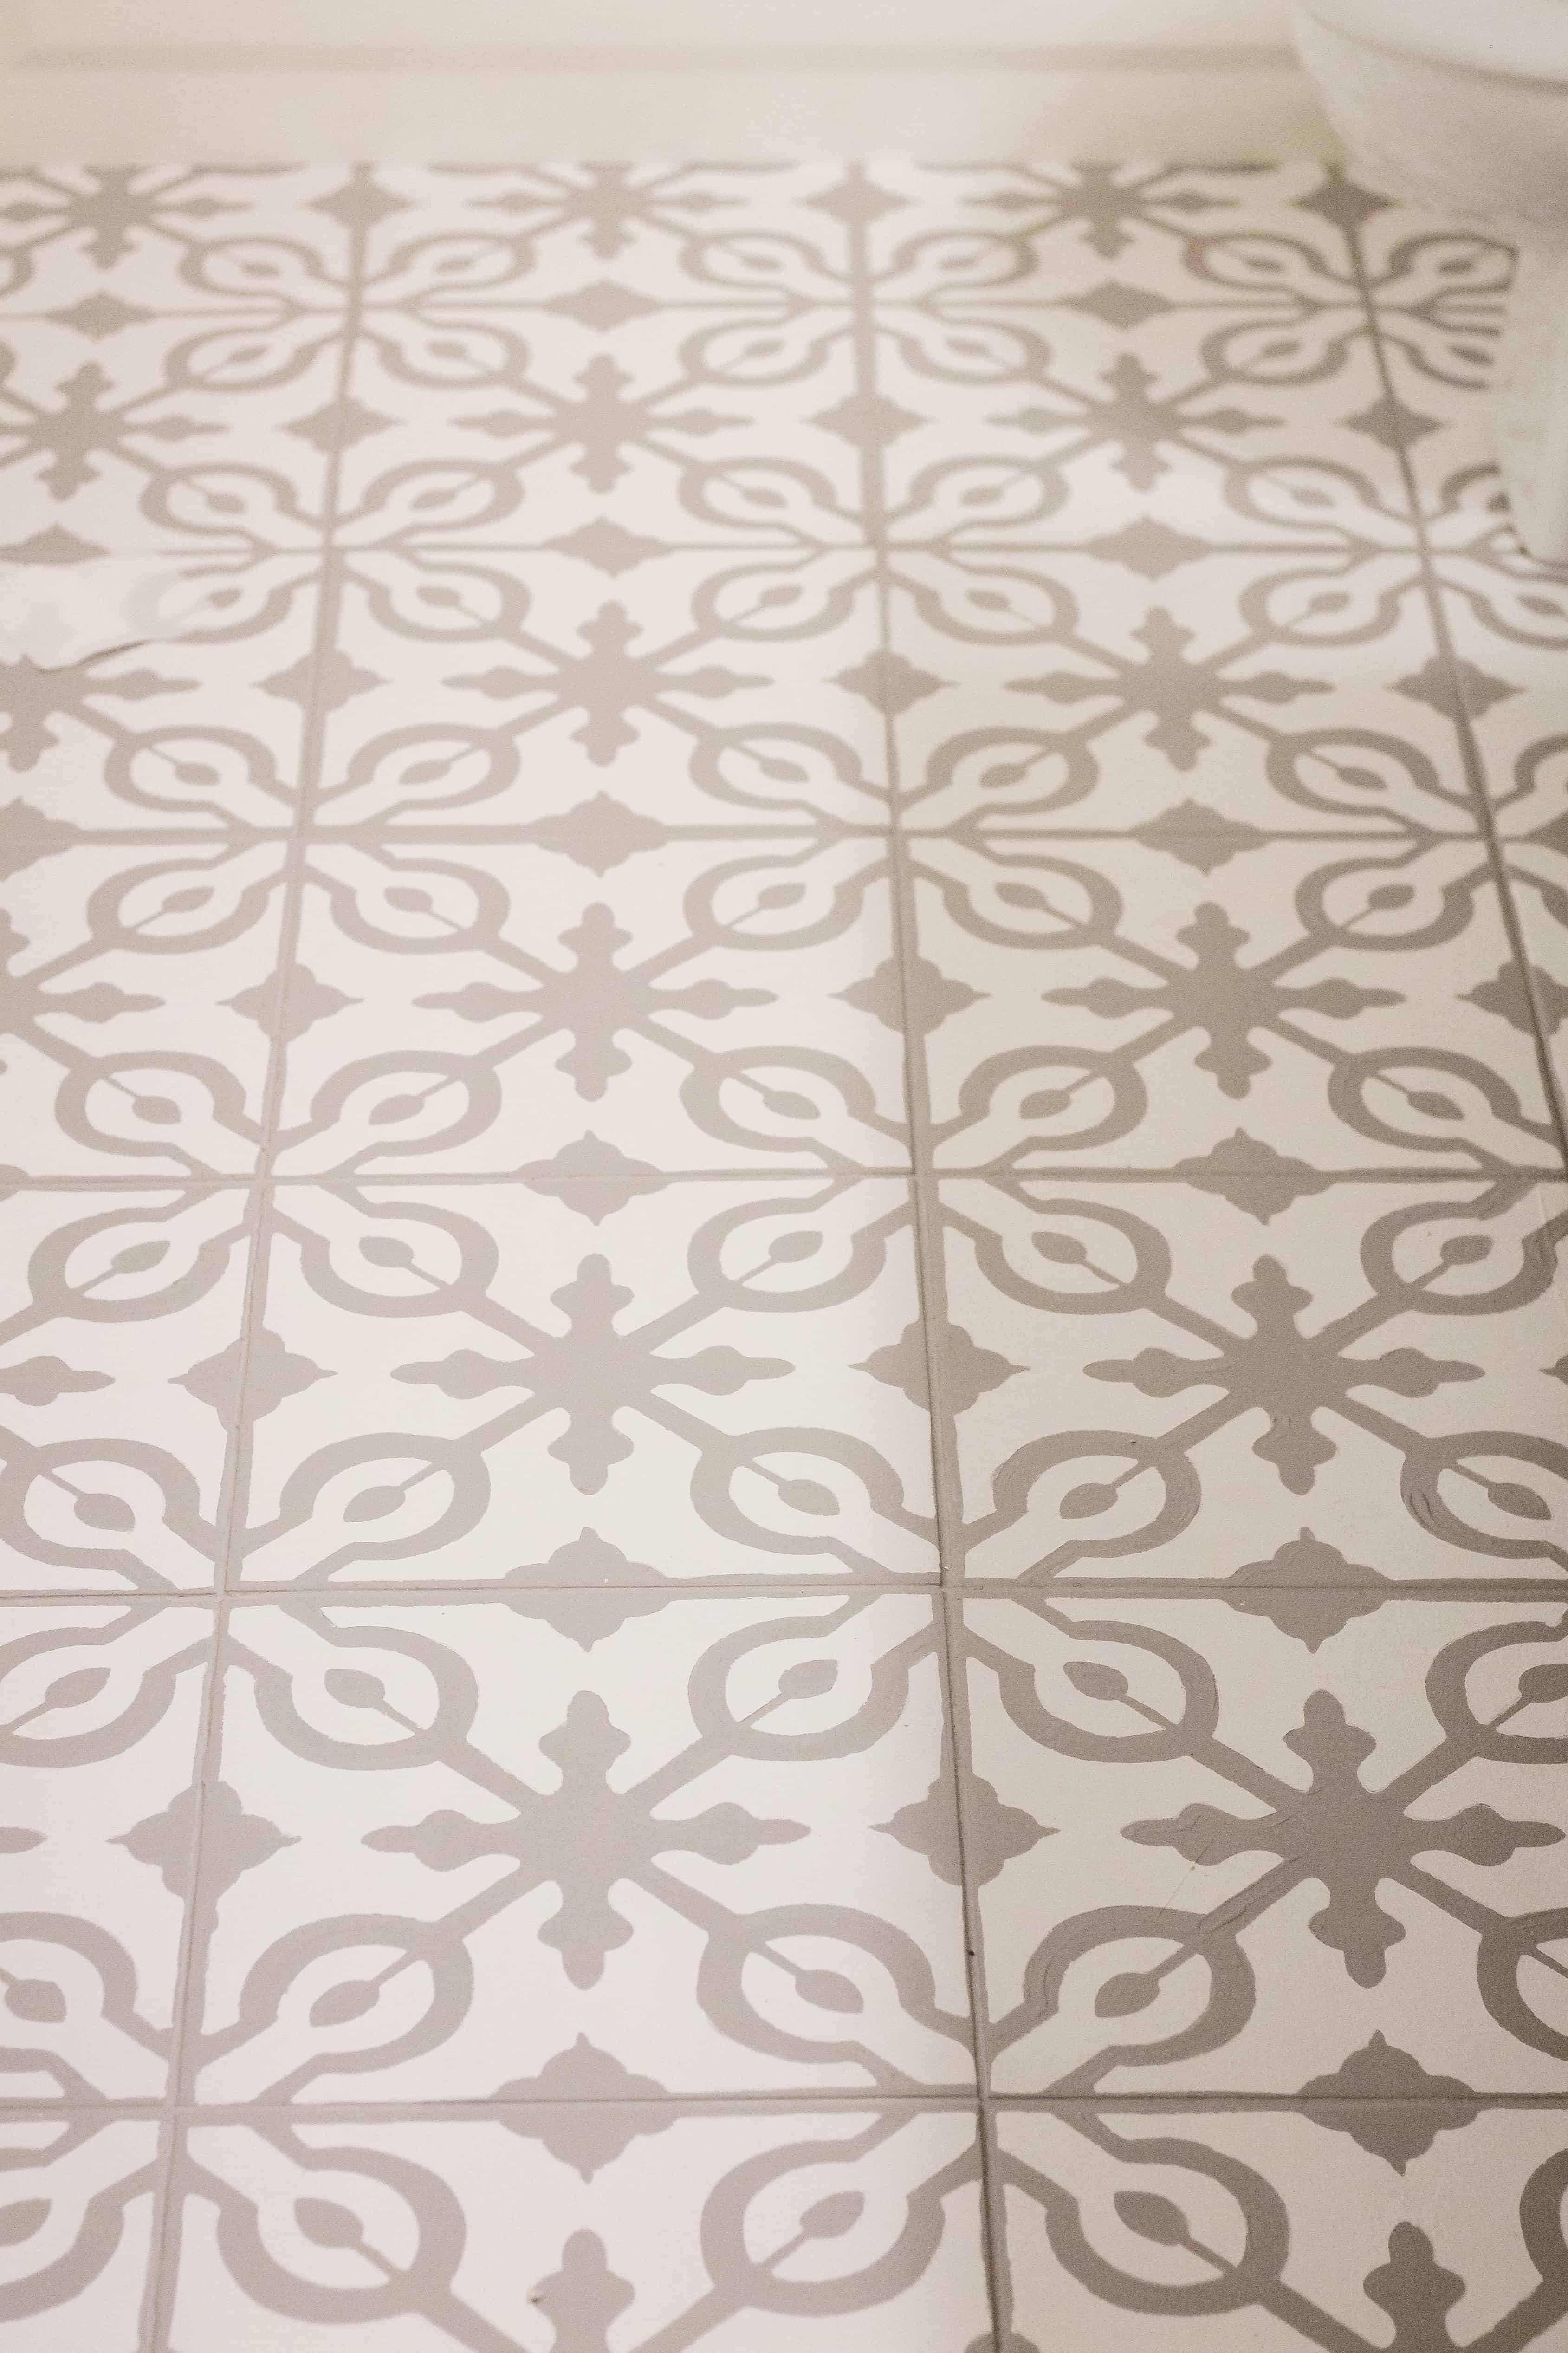 Painted and stenciled Tile floors